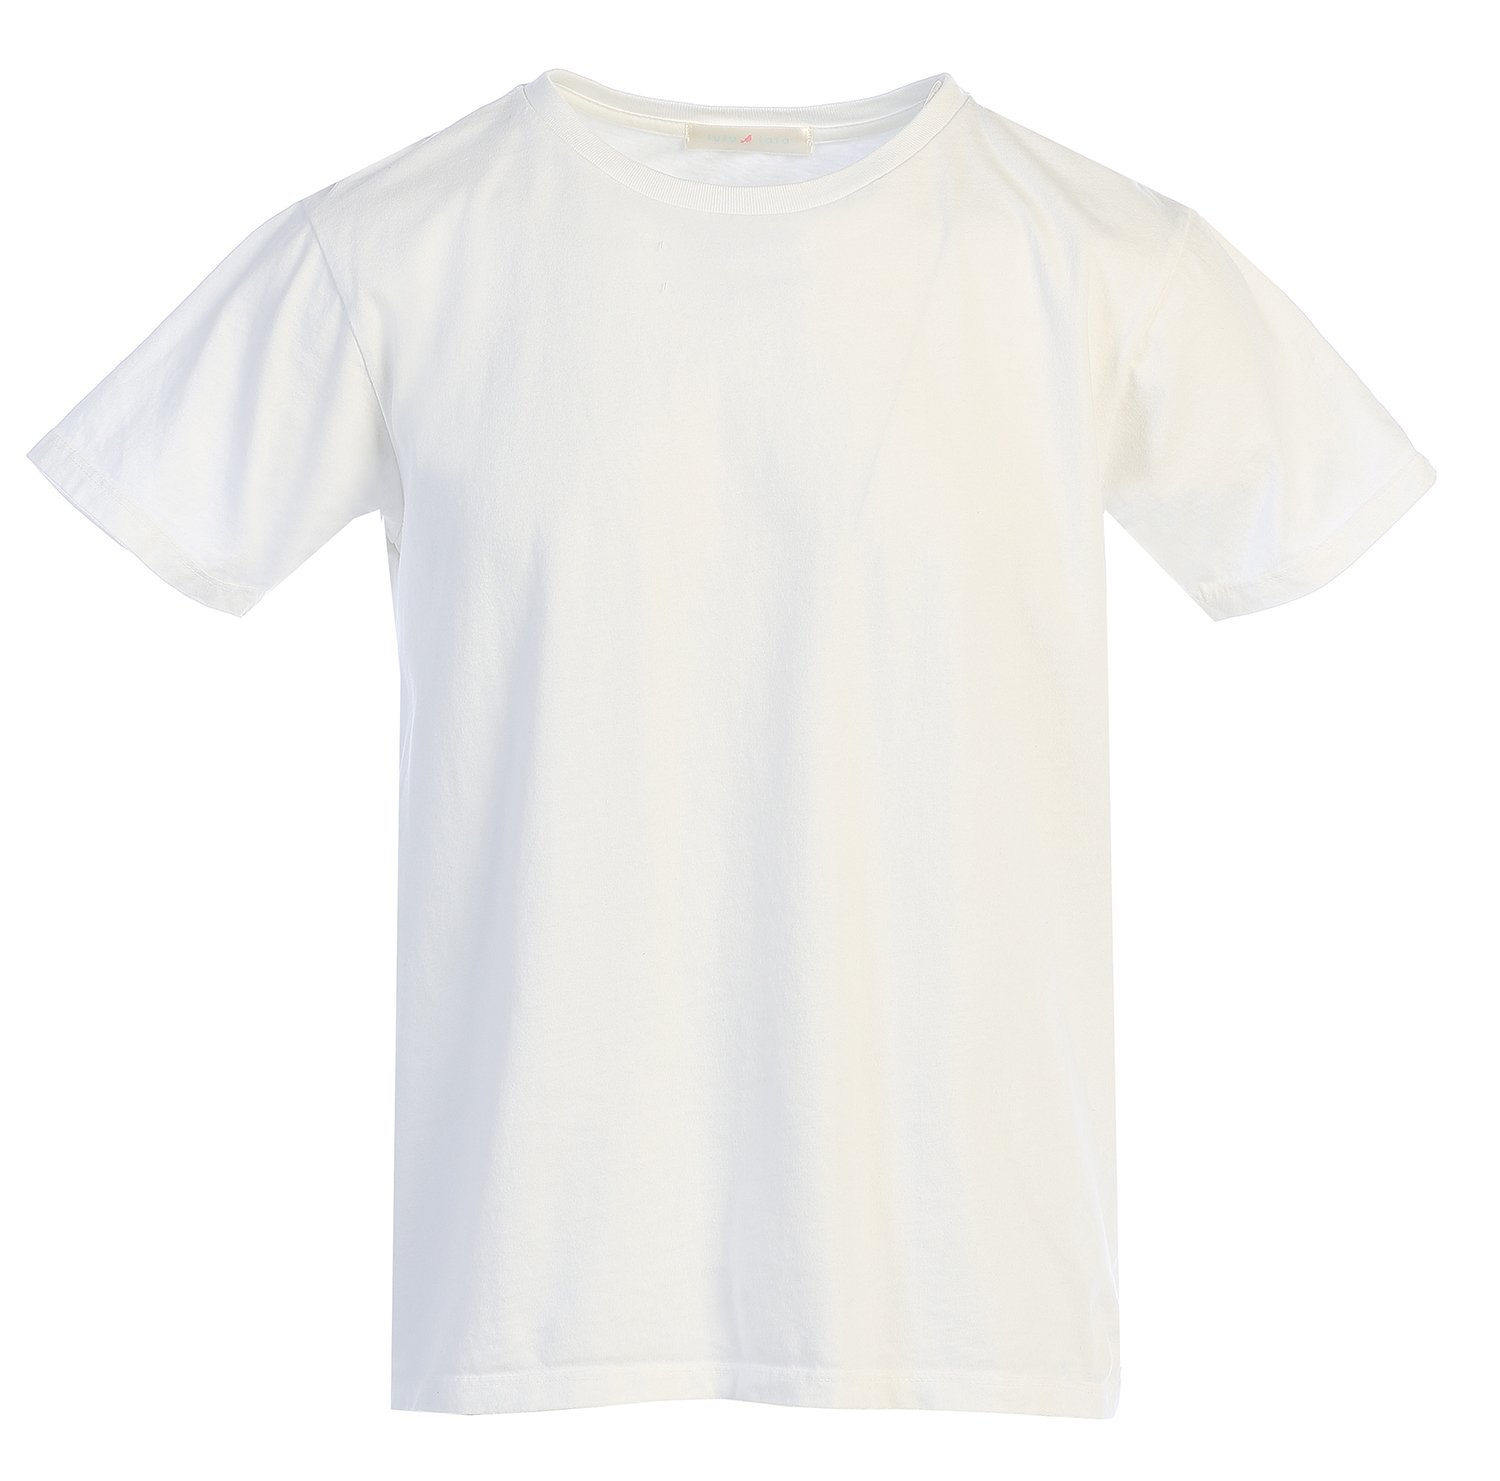 LAFSQ Unisex Plain Classic Style Premium Fine Jersey T-Shirt Top, Made In USA (White, M)